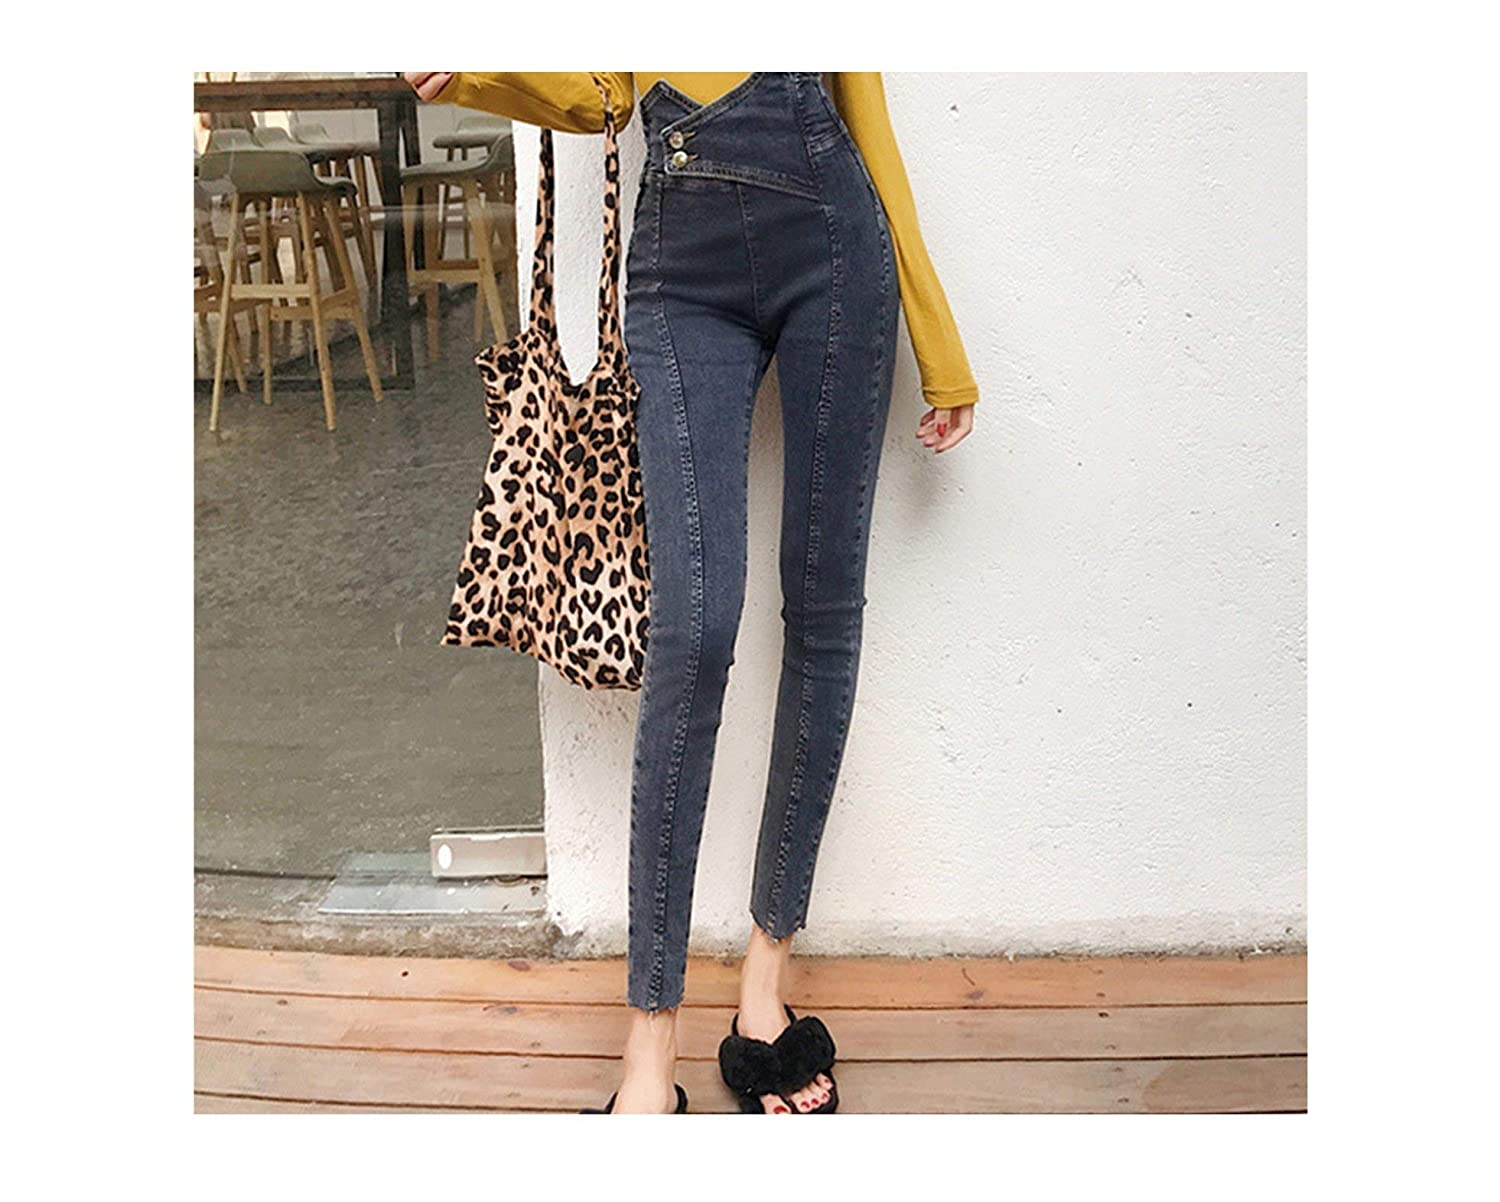 color syzhangdd Jeans Women Pencil Pants High Waist Jeans Sexy Slim Elastic Skinny Pants Trousers Fit Lady Jeans